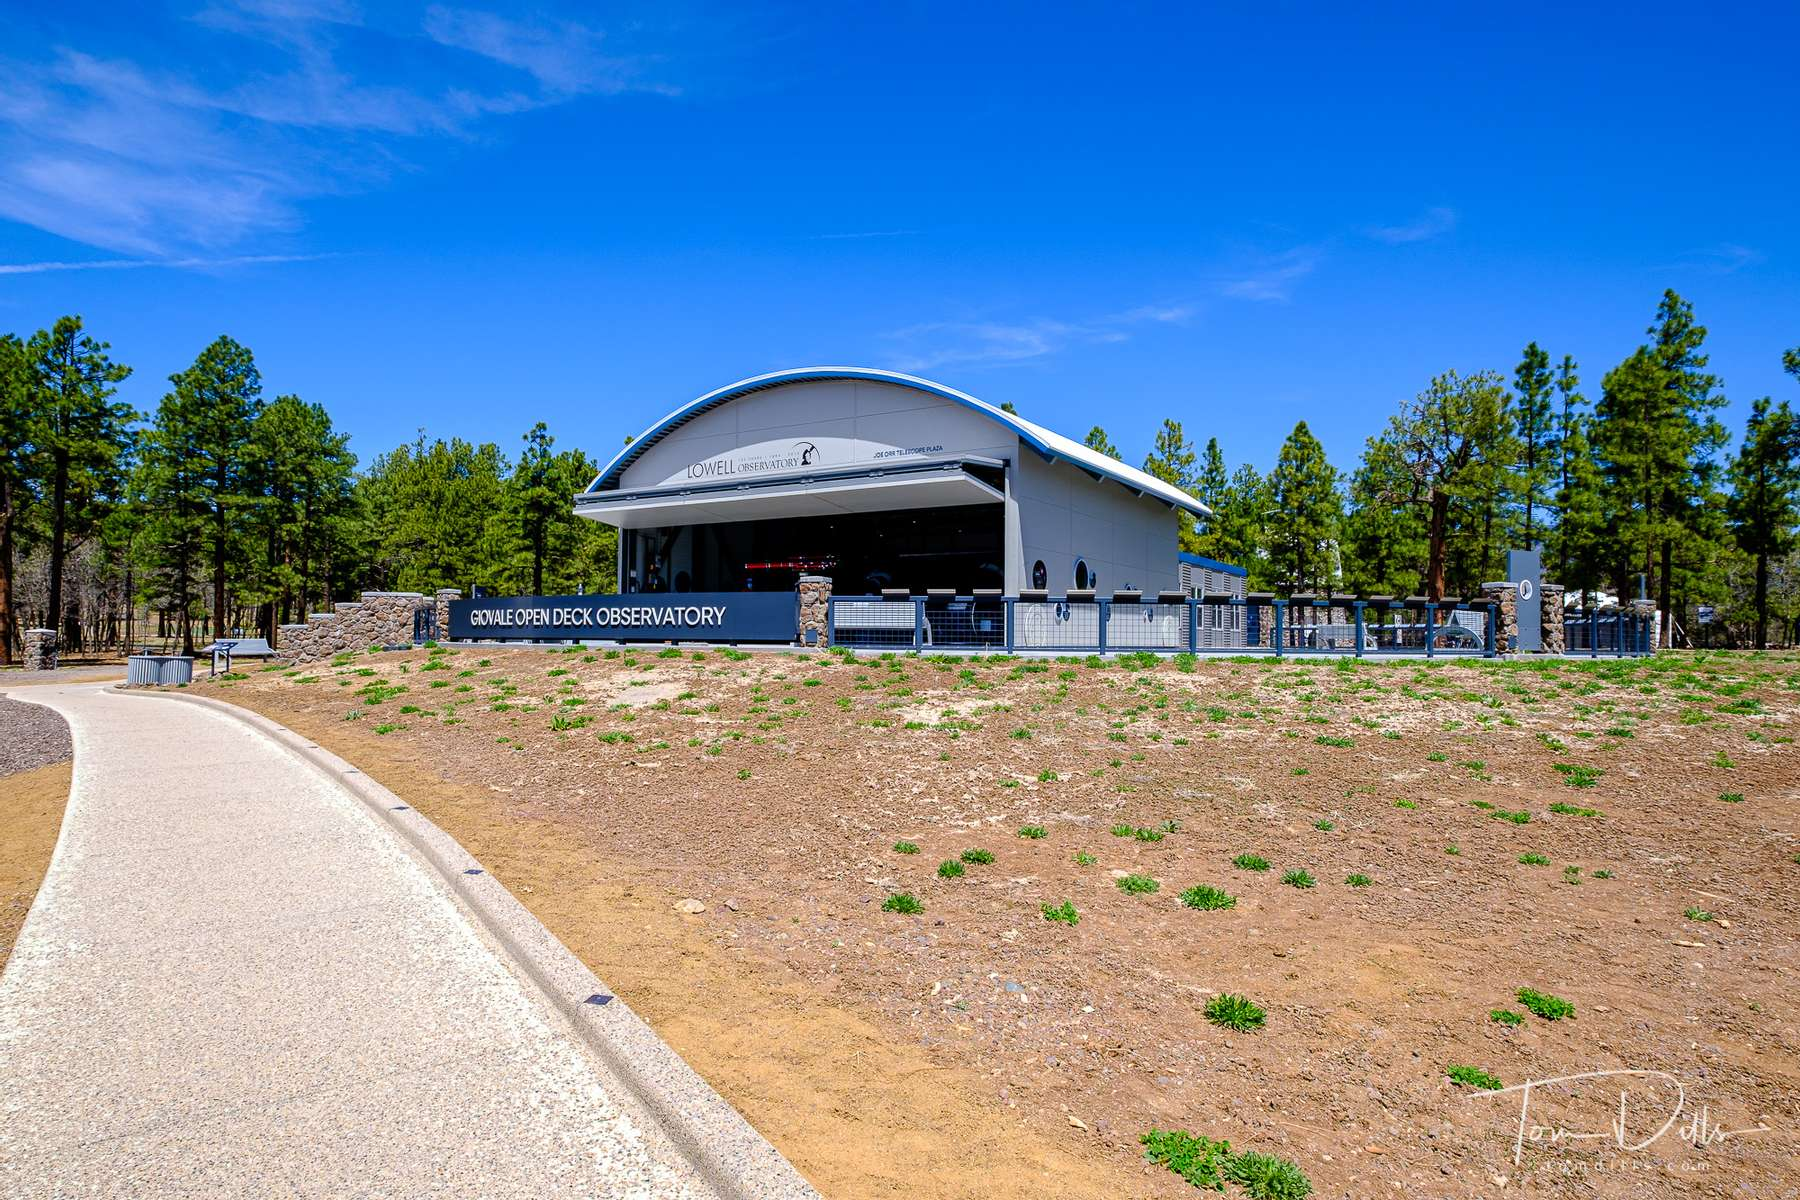 The Giovale Open Deck Observatory at Lowell Observatory in Flagstaff, Arizona.  A unique feature of the observatory is that in order to expose the instruments to the night sky, the building itself retracts to the rear, opening the deck to the sky.